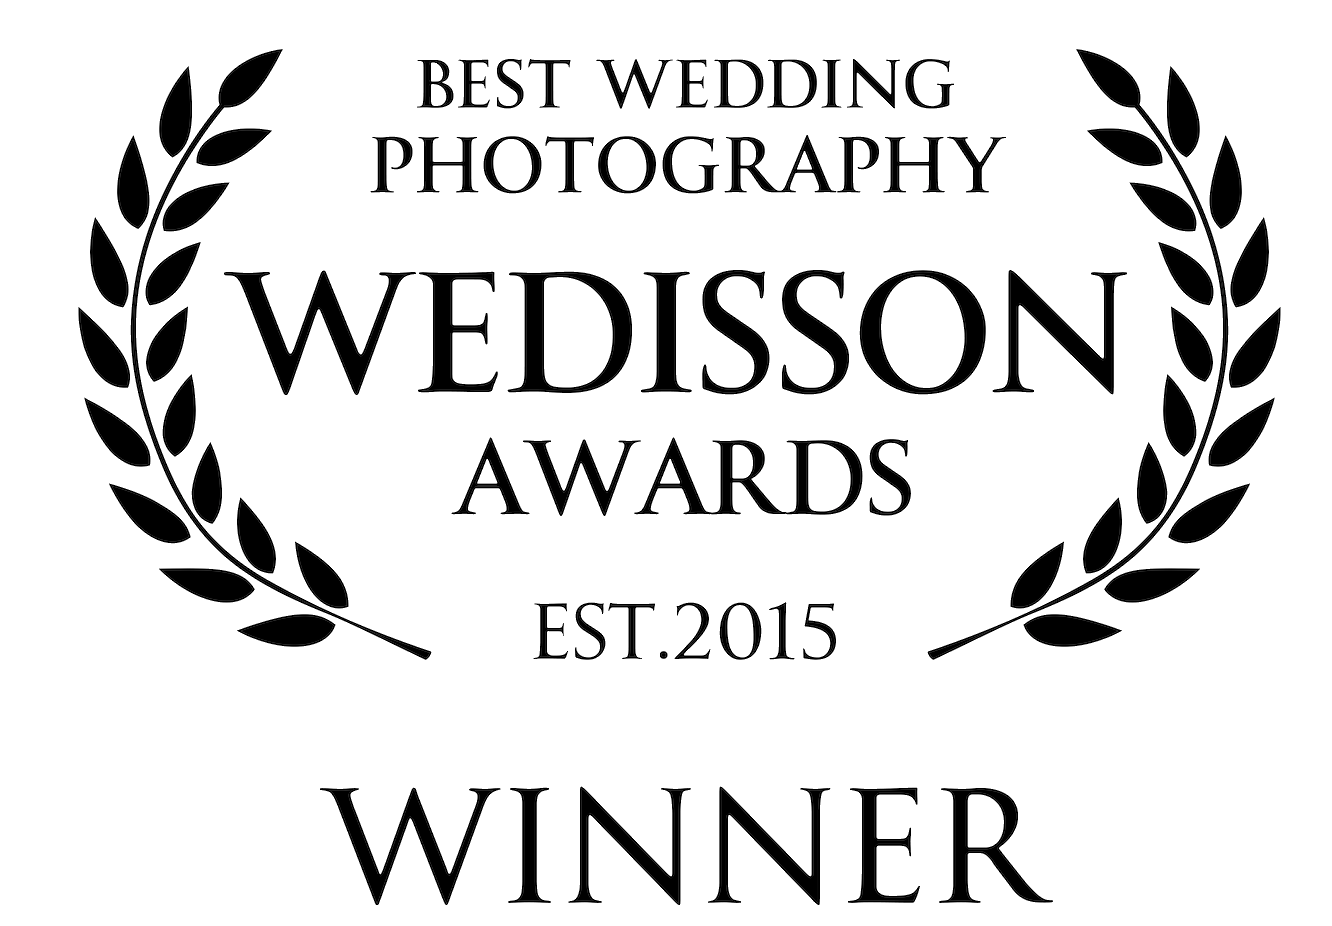 Weddisson Award Winner Logo